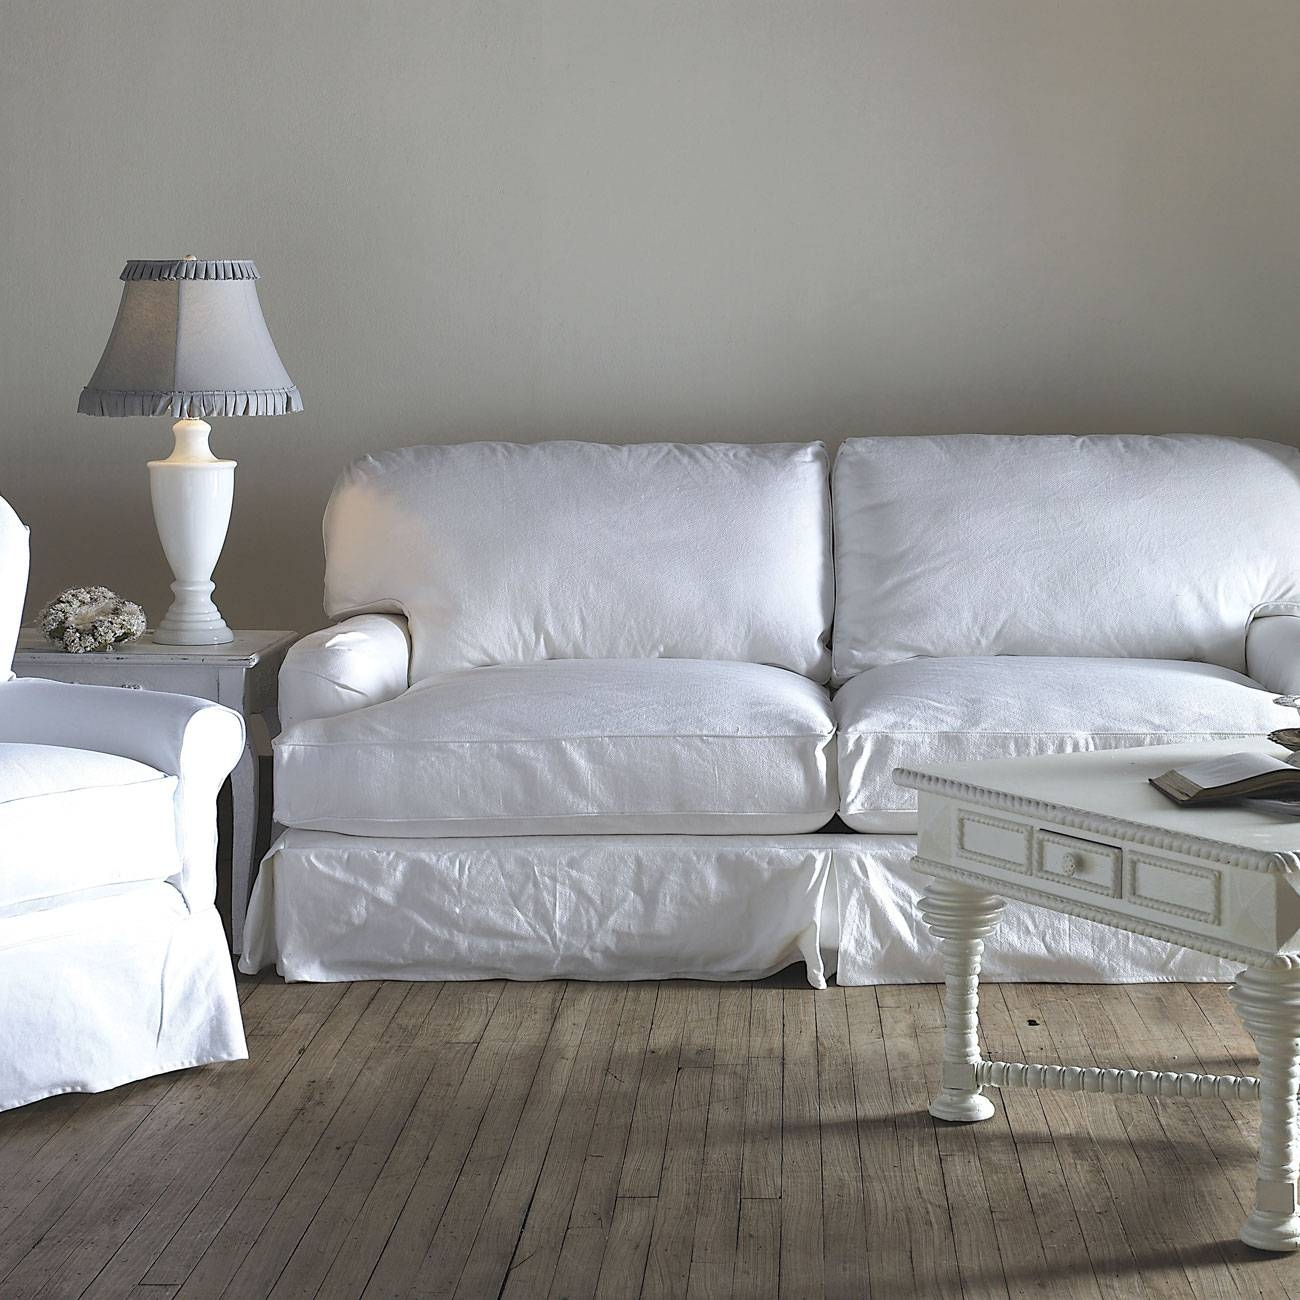 25 Cozy Shabby Chic Furniture Ideas For Your Home | Top Home Designs with regard to Shabby Chic Sofas Cheap (Image 1 of 30)